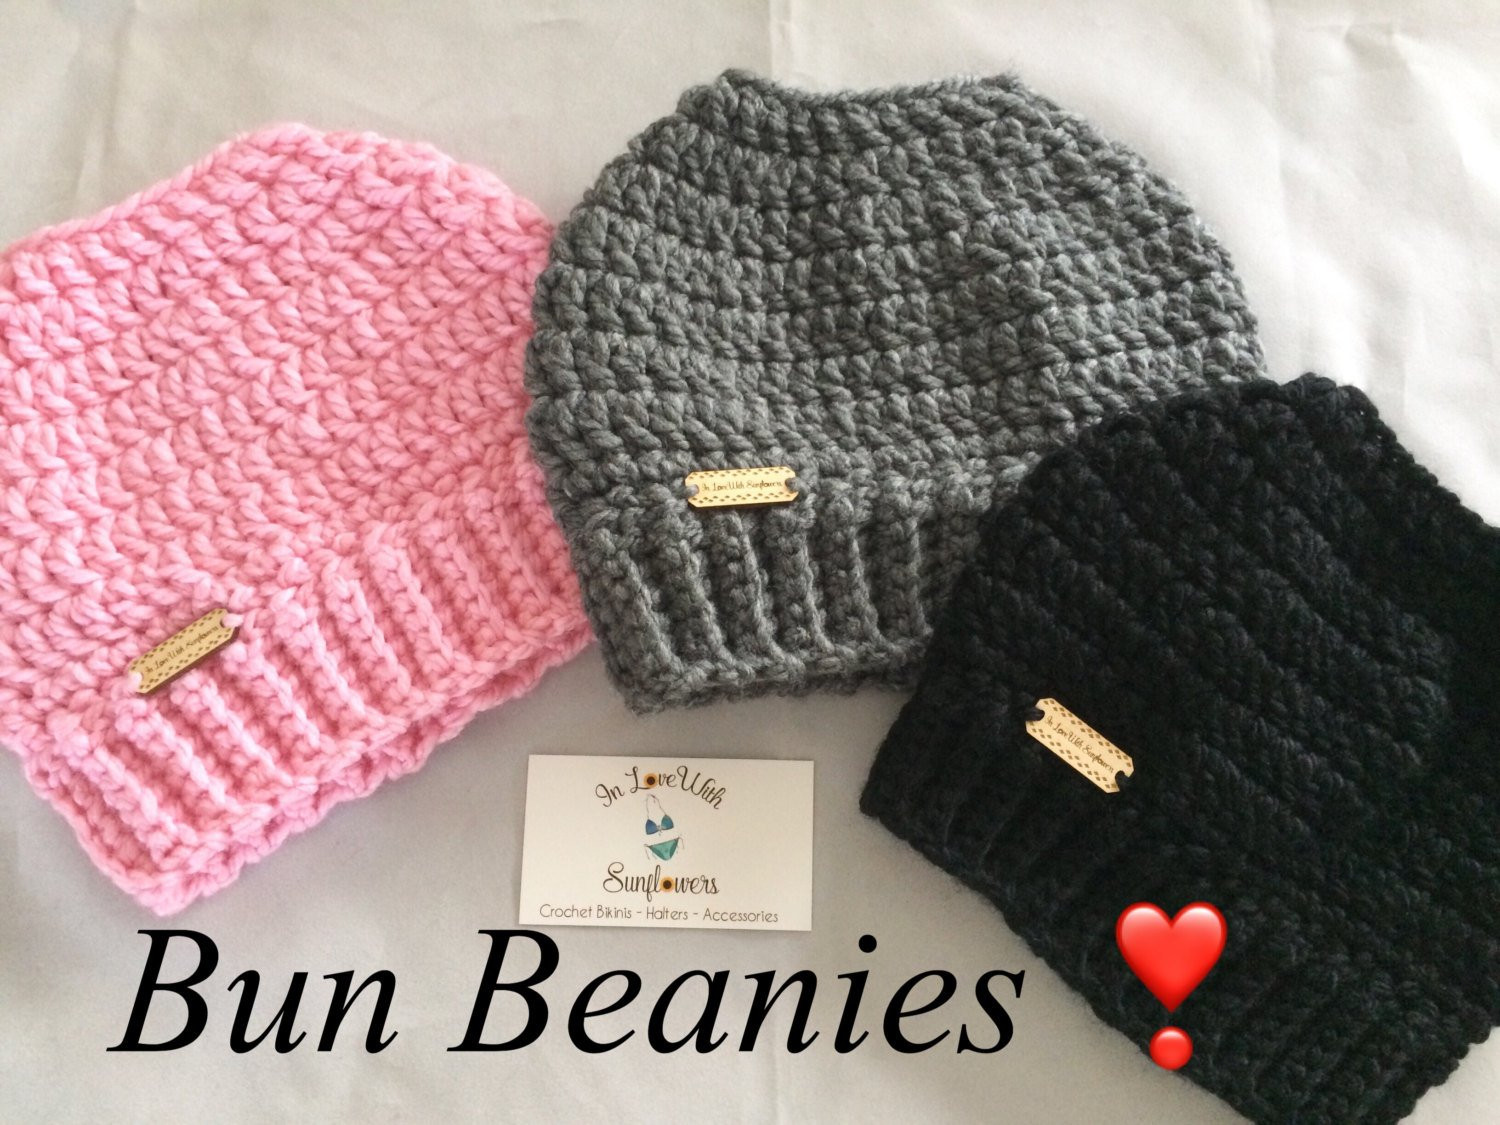 Messy Bun Beanie Hat Best Of Messy Bun Beanie Messy Bun Hat Ponytail Hat Bun Beanie Of Brilliant 47 Photos Messy Bun Beanie Hat